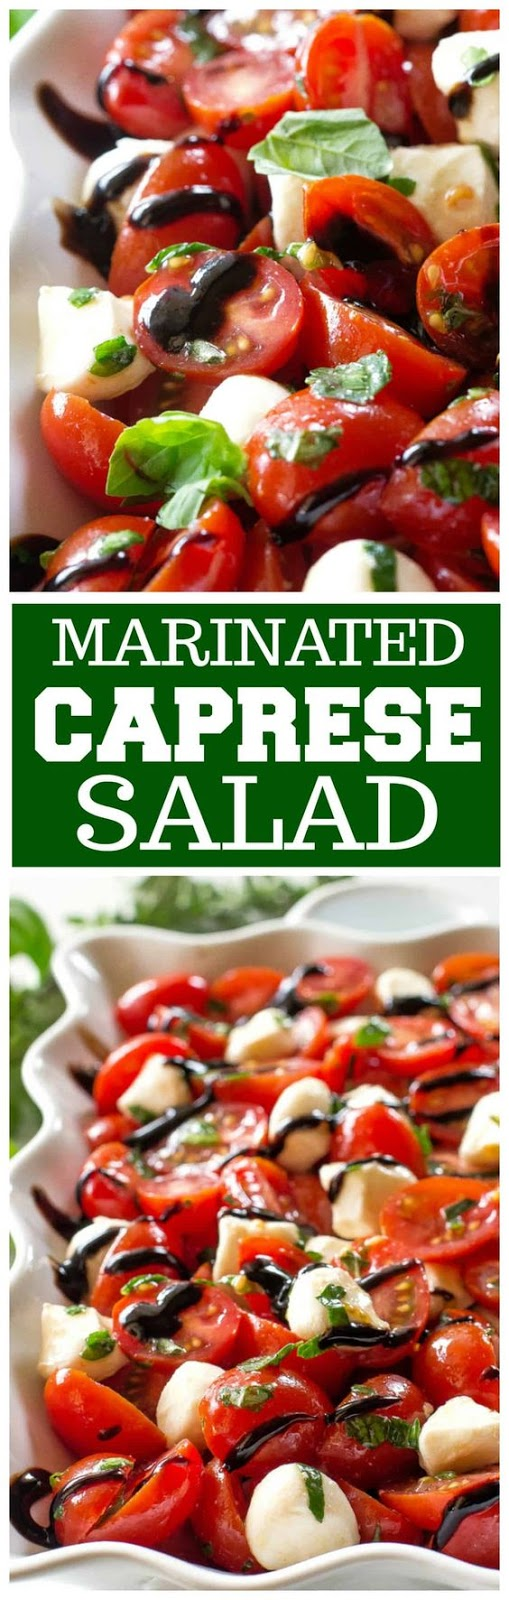 Marinated Caprese Salad